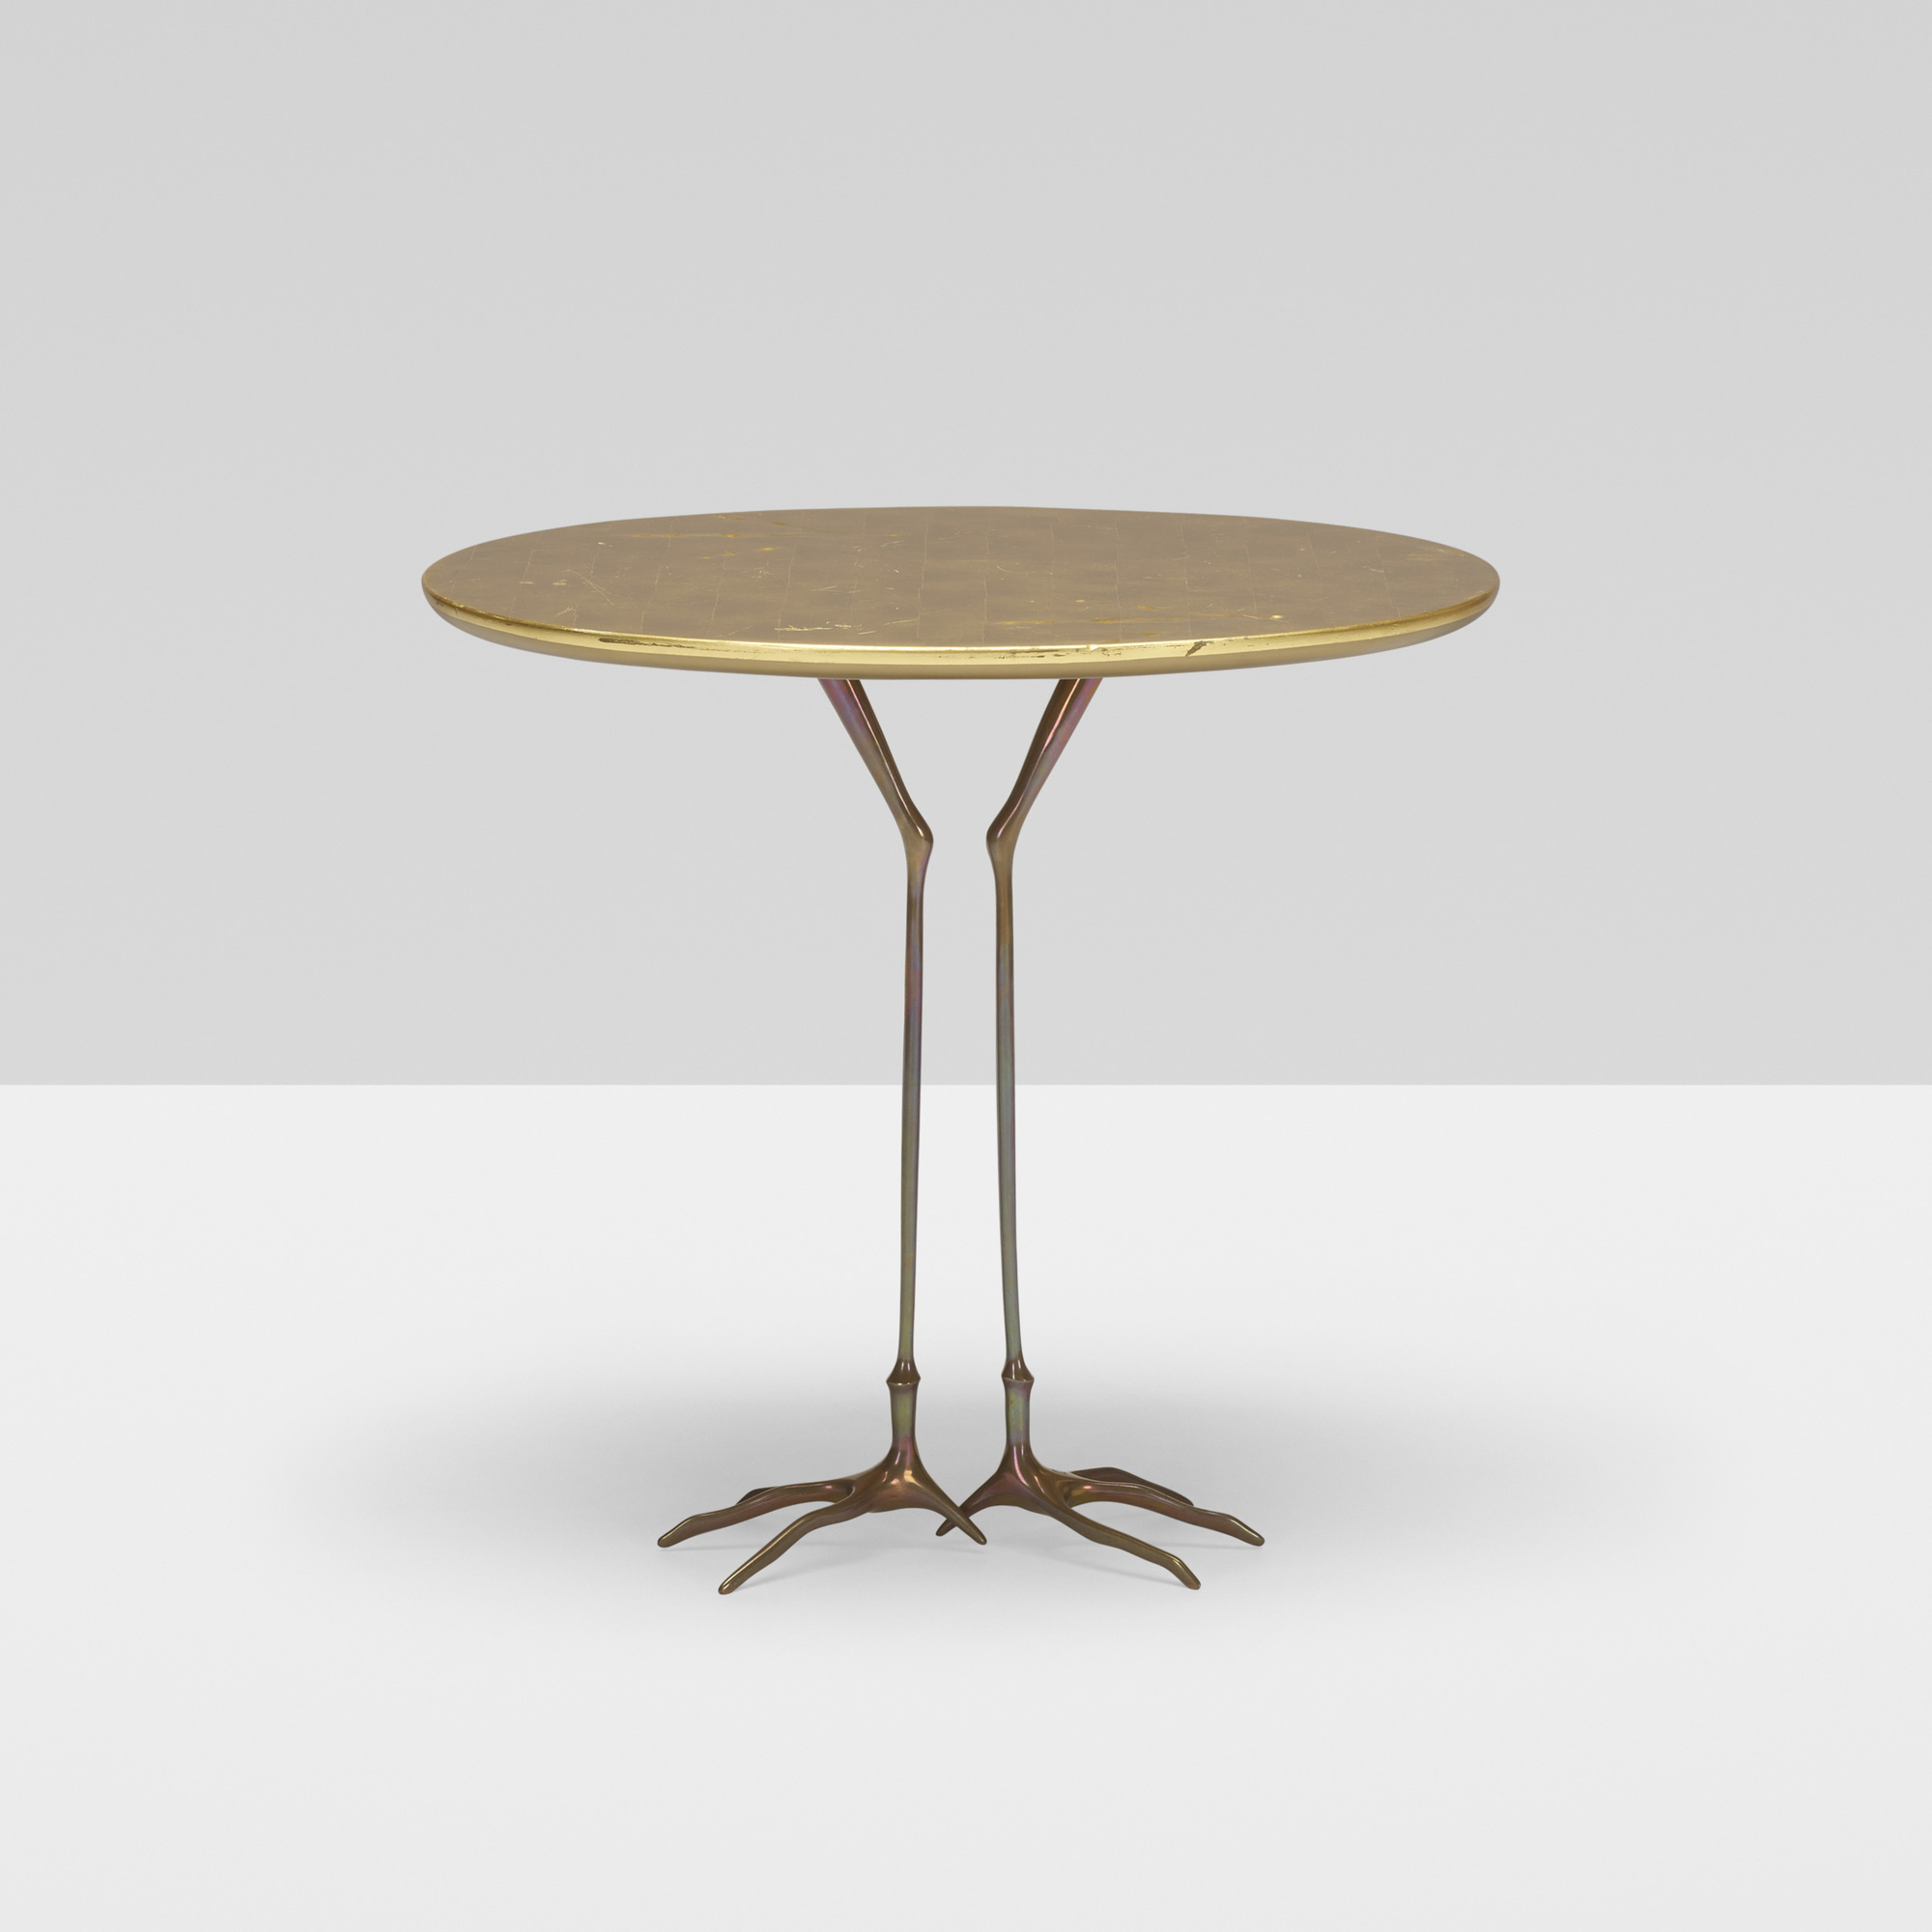 293: Meret Oppenheim / Traccia table from the Ultramobile collection (1 of 3)